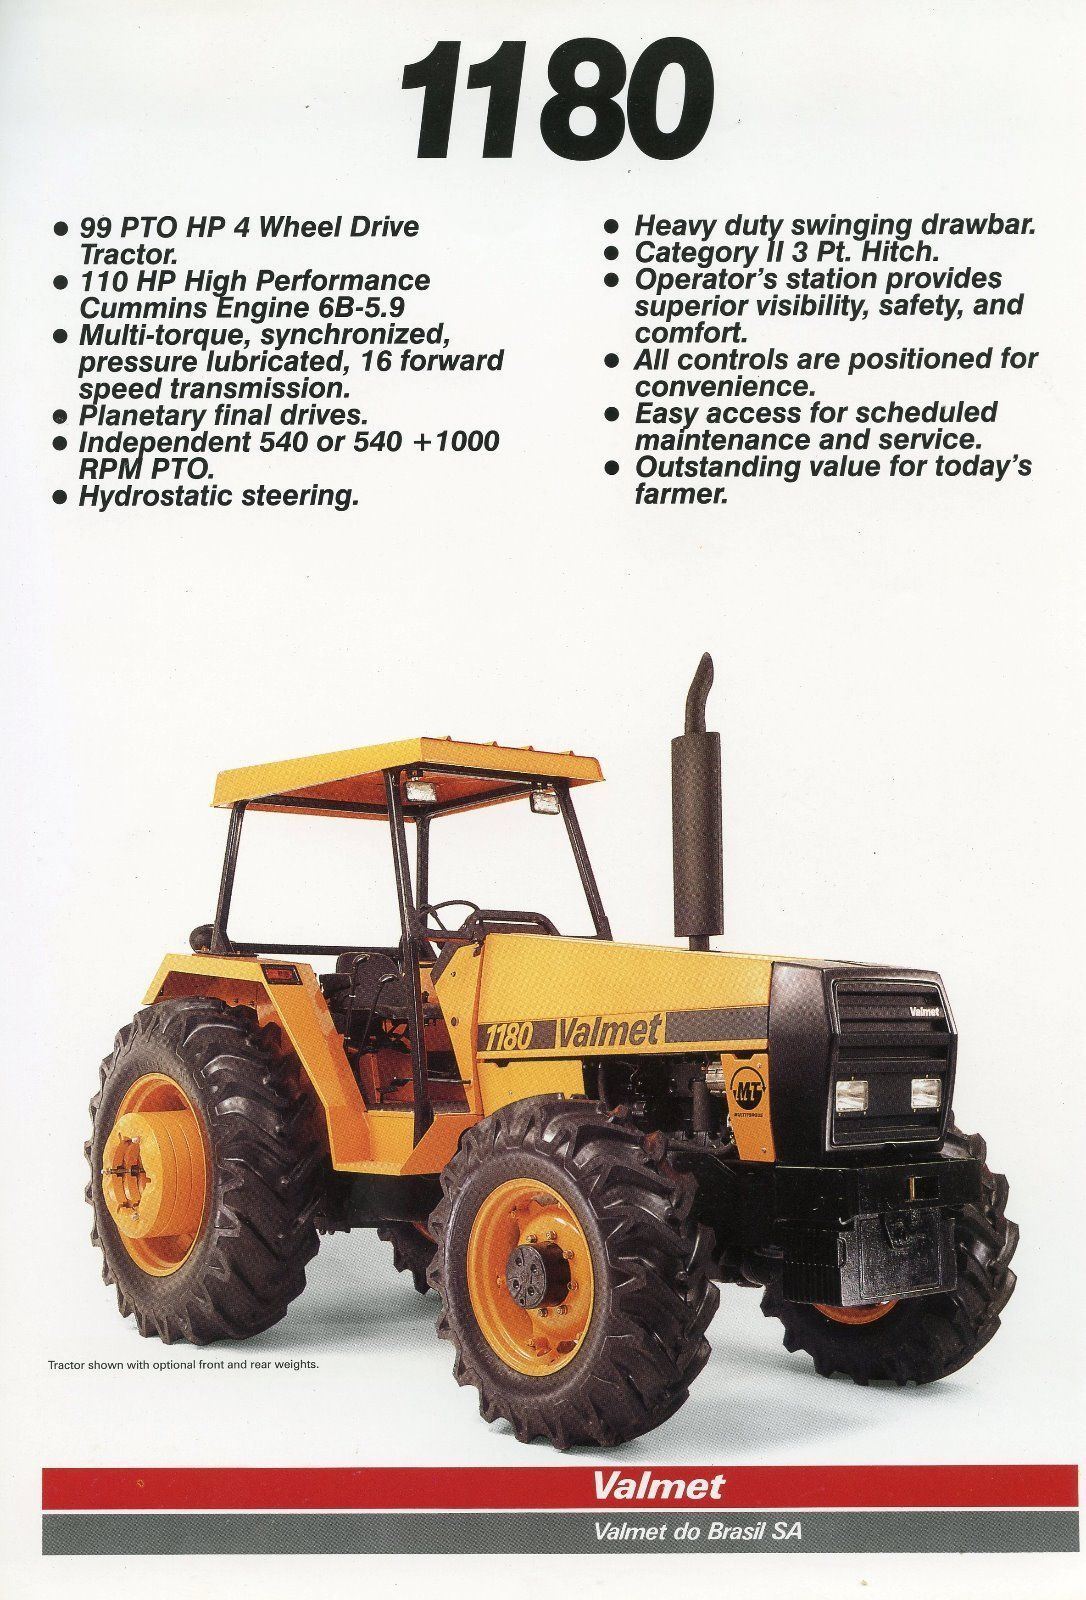 hight resolution of ford new holland tractor diesel fuel filters cnh tractor 84535312 valmet 1180 tractor leaflet brazilian made tractor 1 99 picclick uk